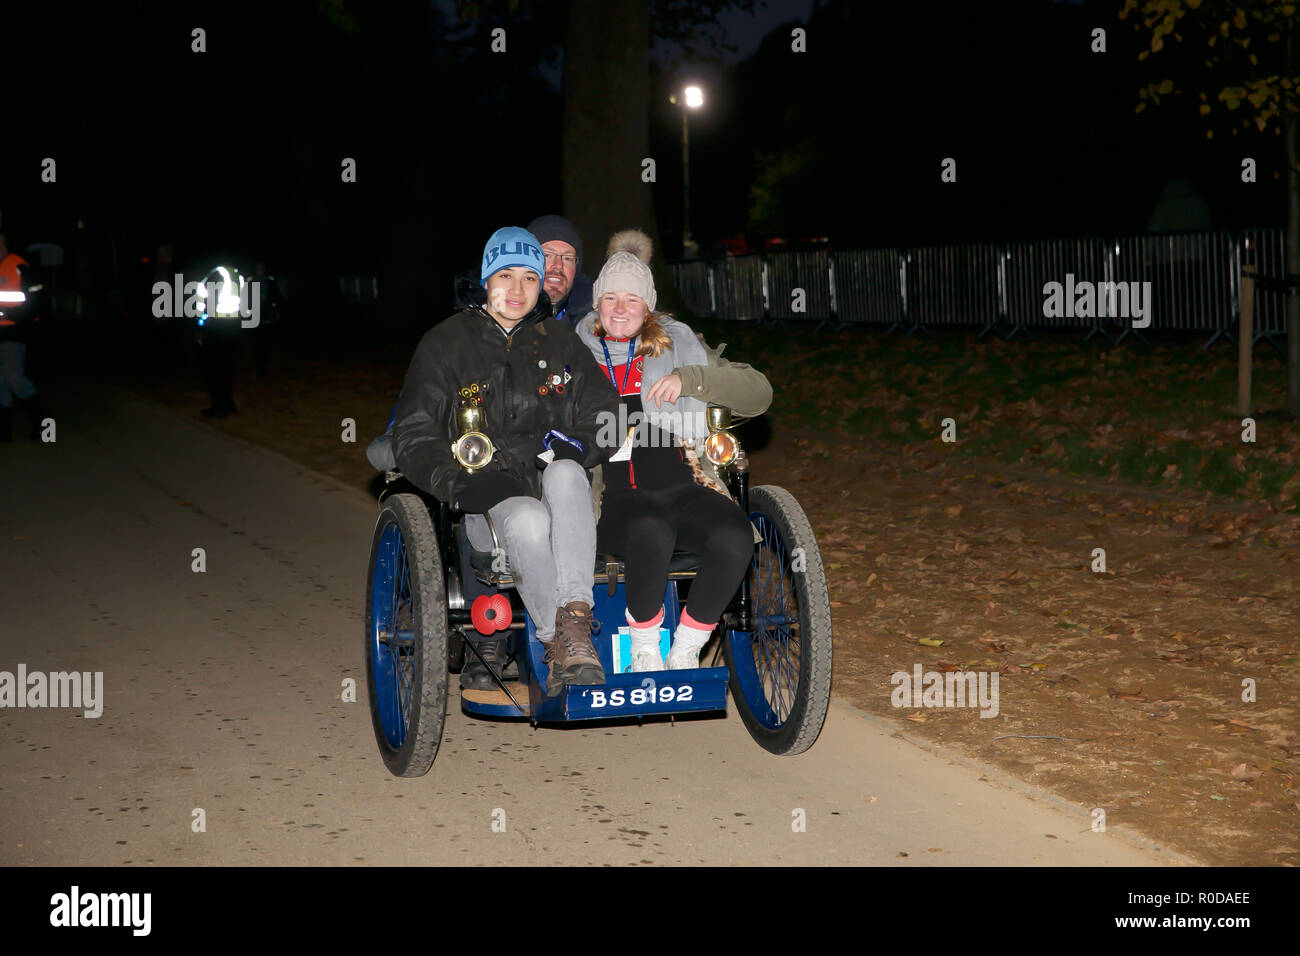 Hyde Park,London,UK,4th November 2018,London to Brighton Veteran Car Run gets underway from Hyde Park on its 122nd Anniversary its the World's longest running motoring event. Veteran cars make the run down to Brighton to hopefully cross the Finish Line in Madeira Drive with spectators lining the route. Credit: Keith Larby/Alamy Live News - Stock Image